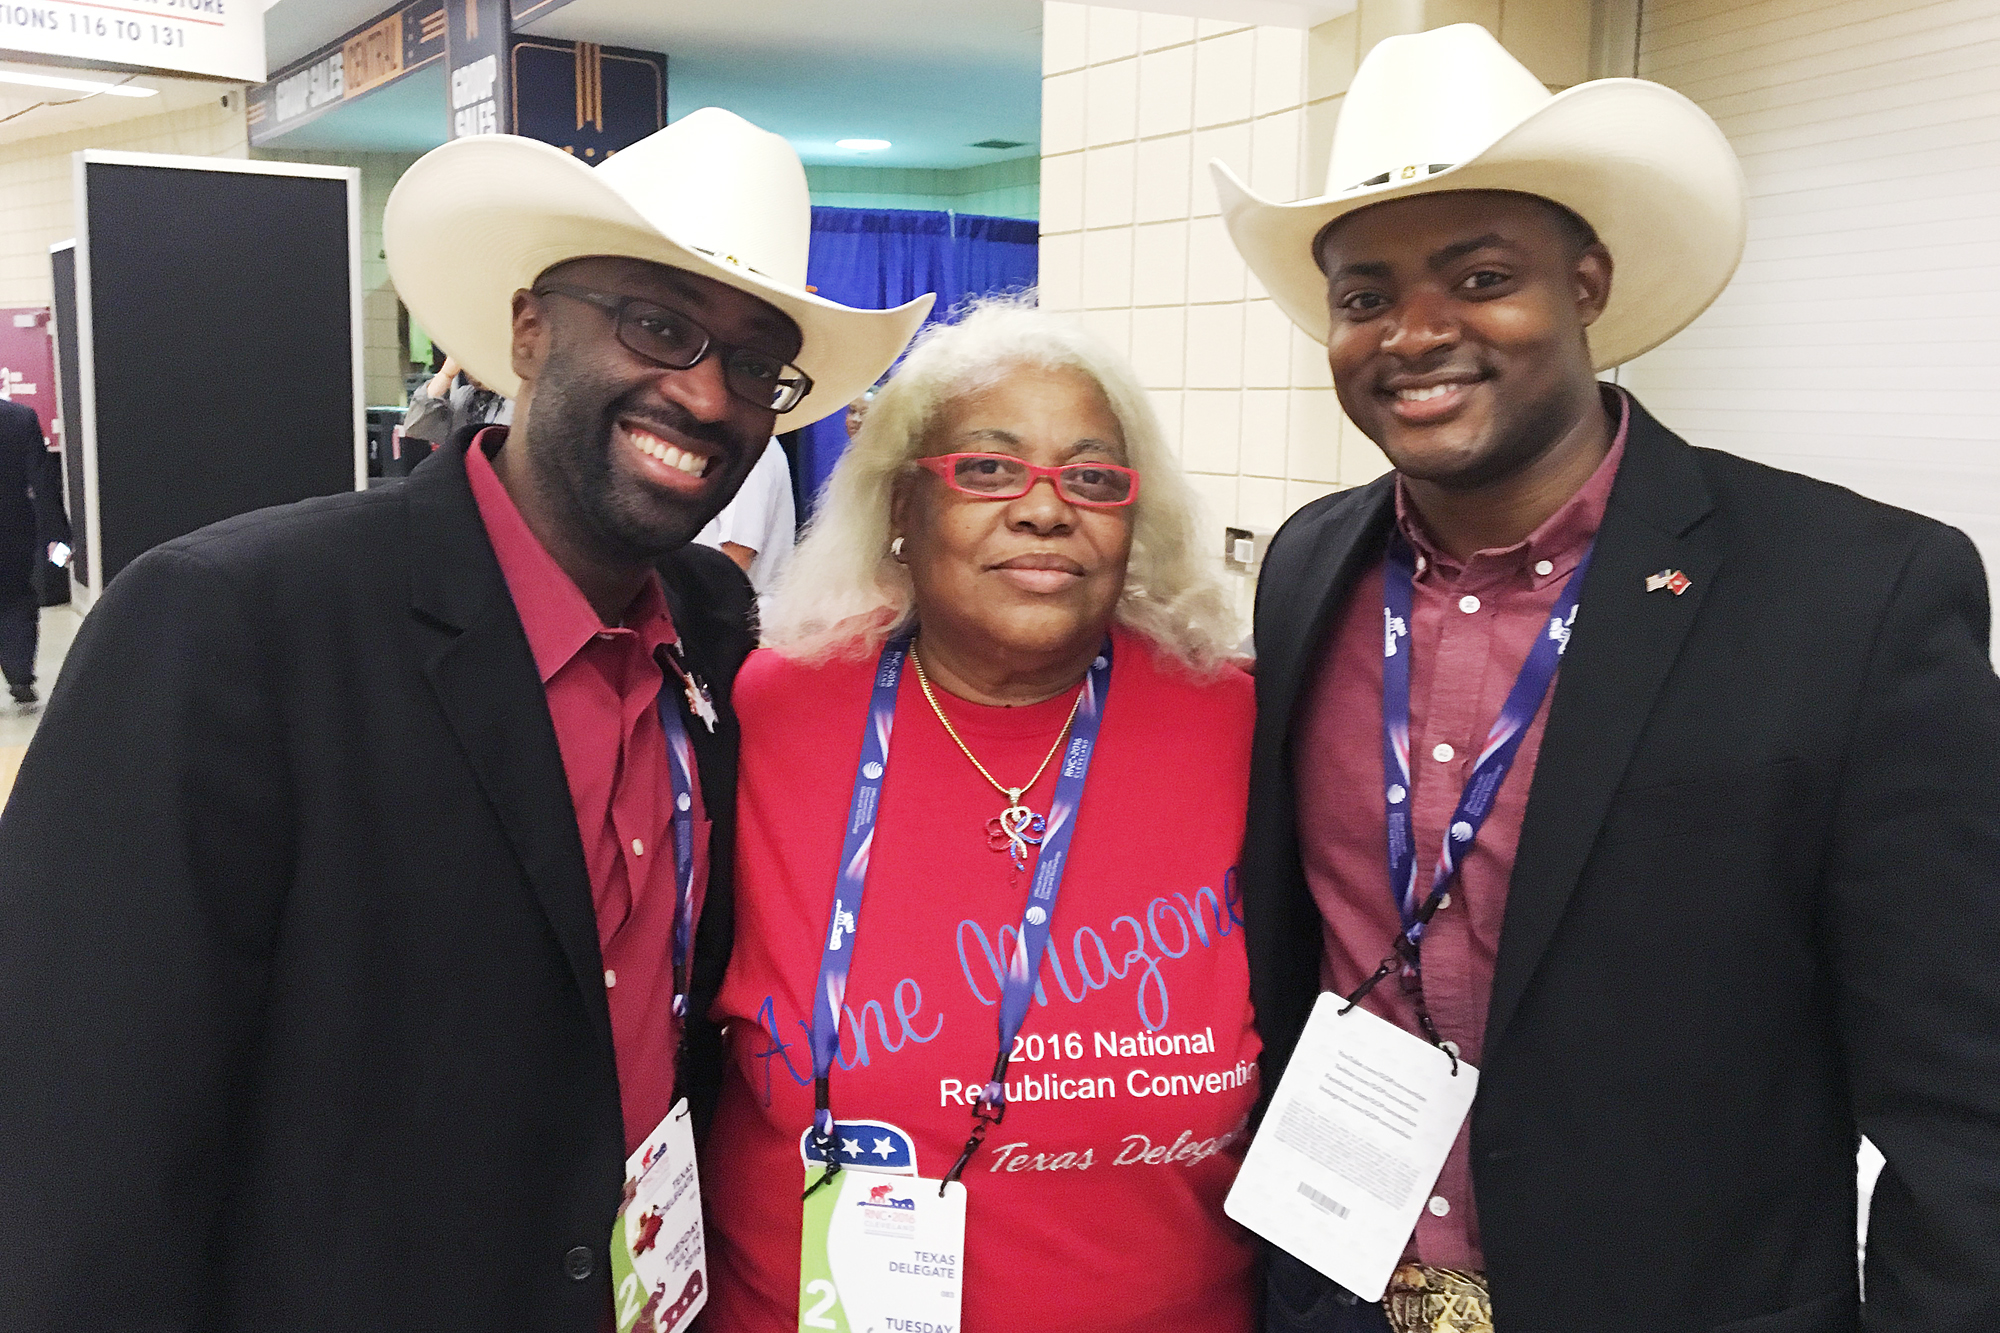 From l-r, Texas delegates Christopher Harvey, Anne Mazone and Reginald Grant.